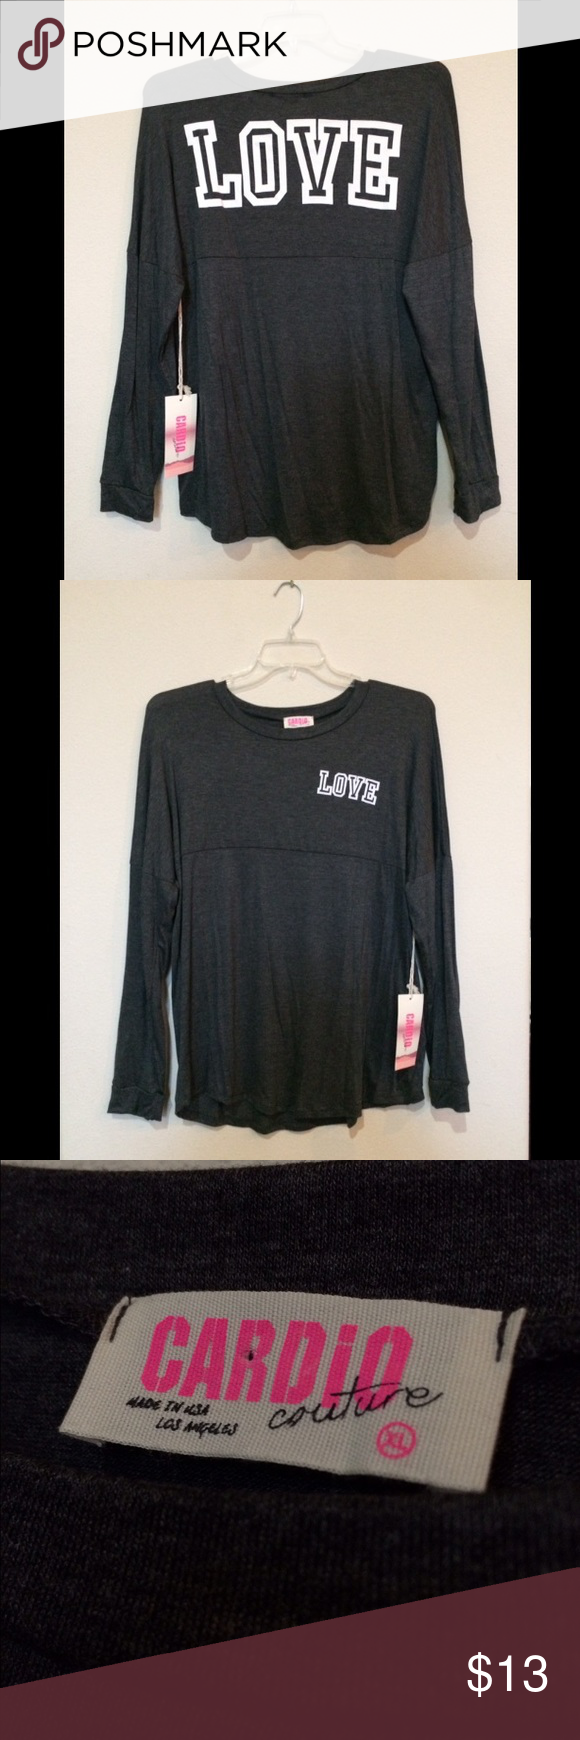 """New """"Love"""" long sleeve top Brand new NWOT, thin long sleeve top. It has the word """"love written large across the upper back, and smaller on the front breast pocket. Cardio Couture Tops Tees - Long Sleeve"""